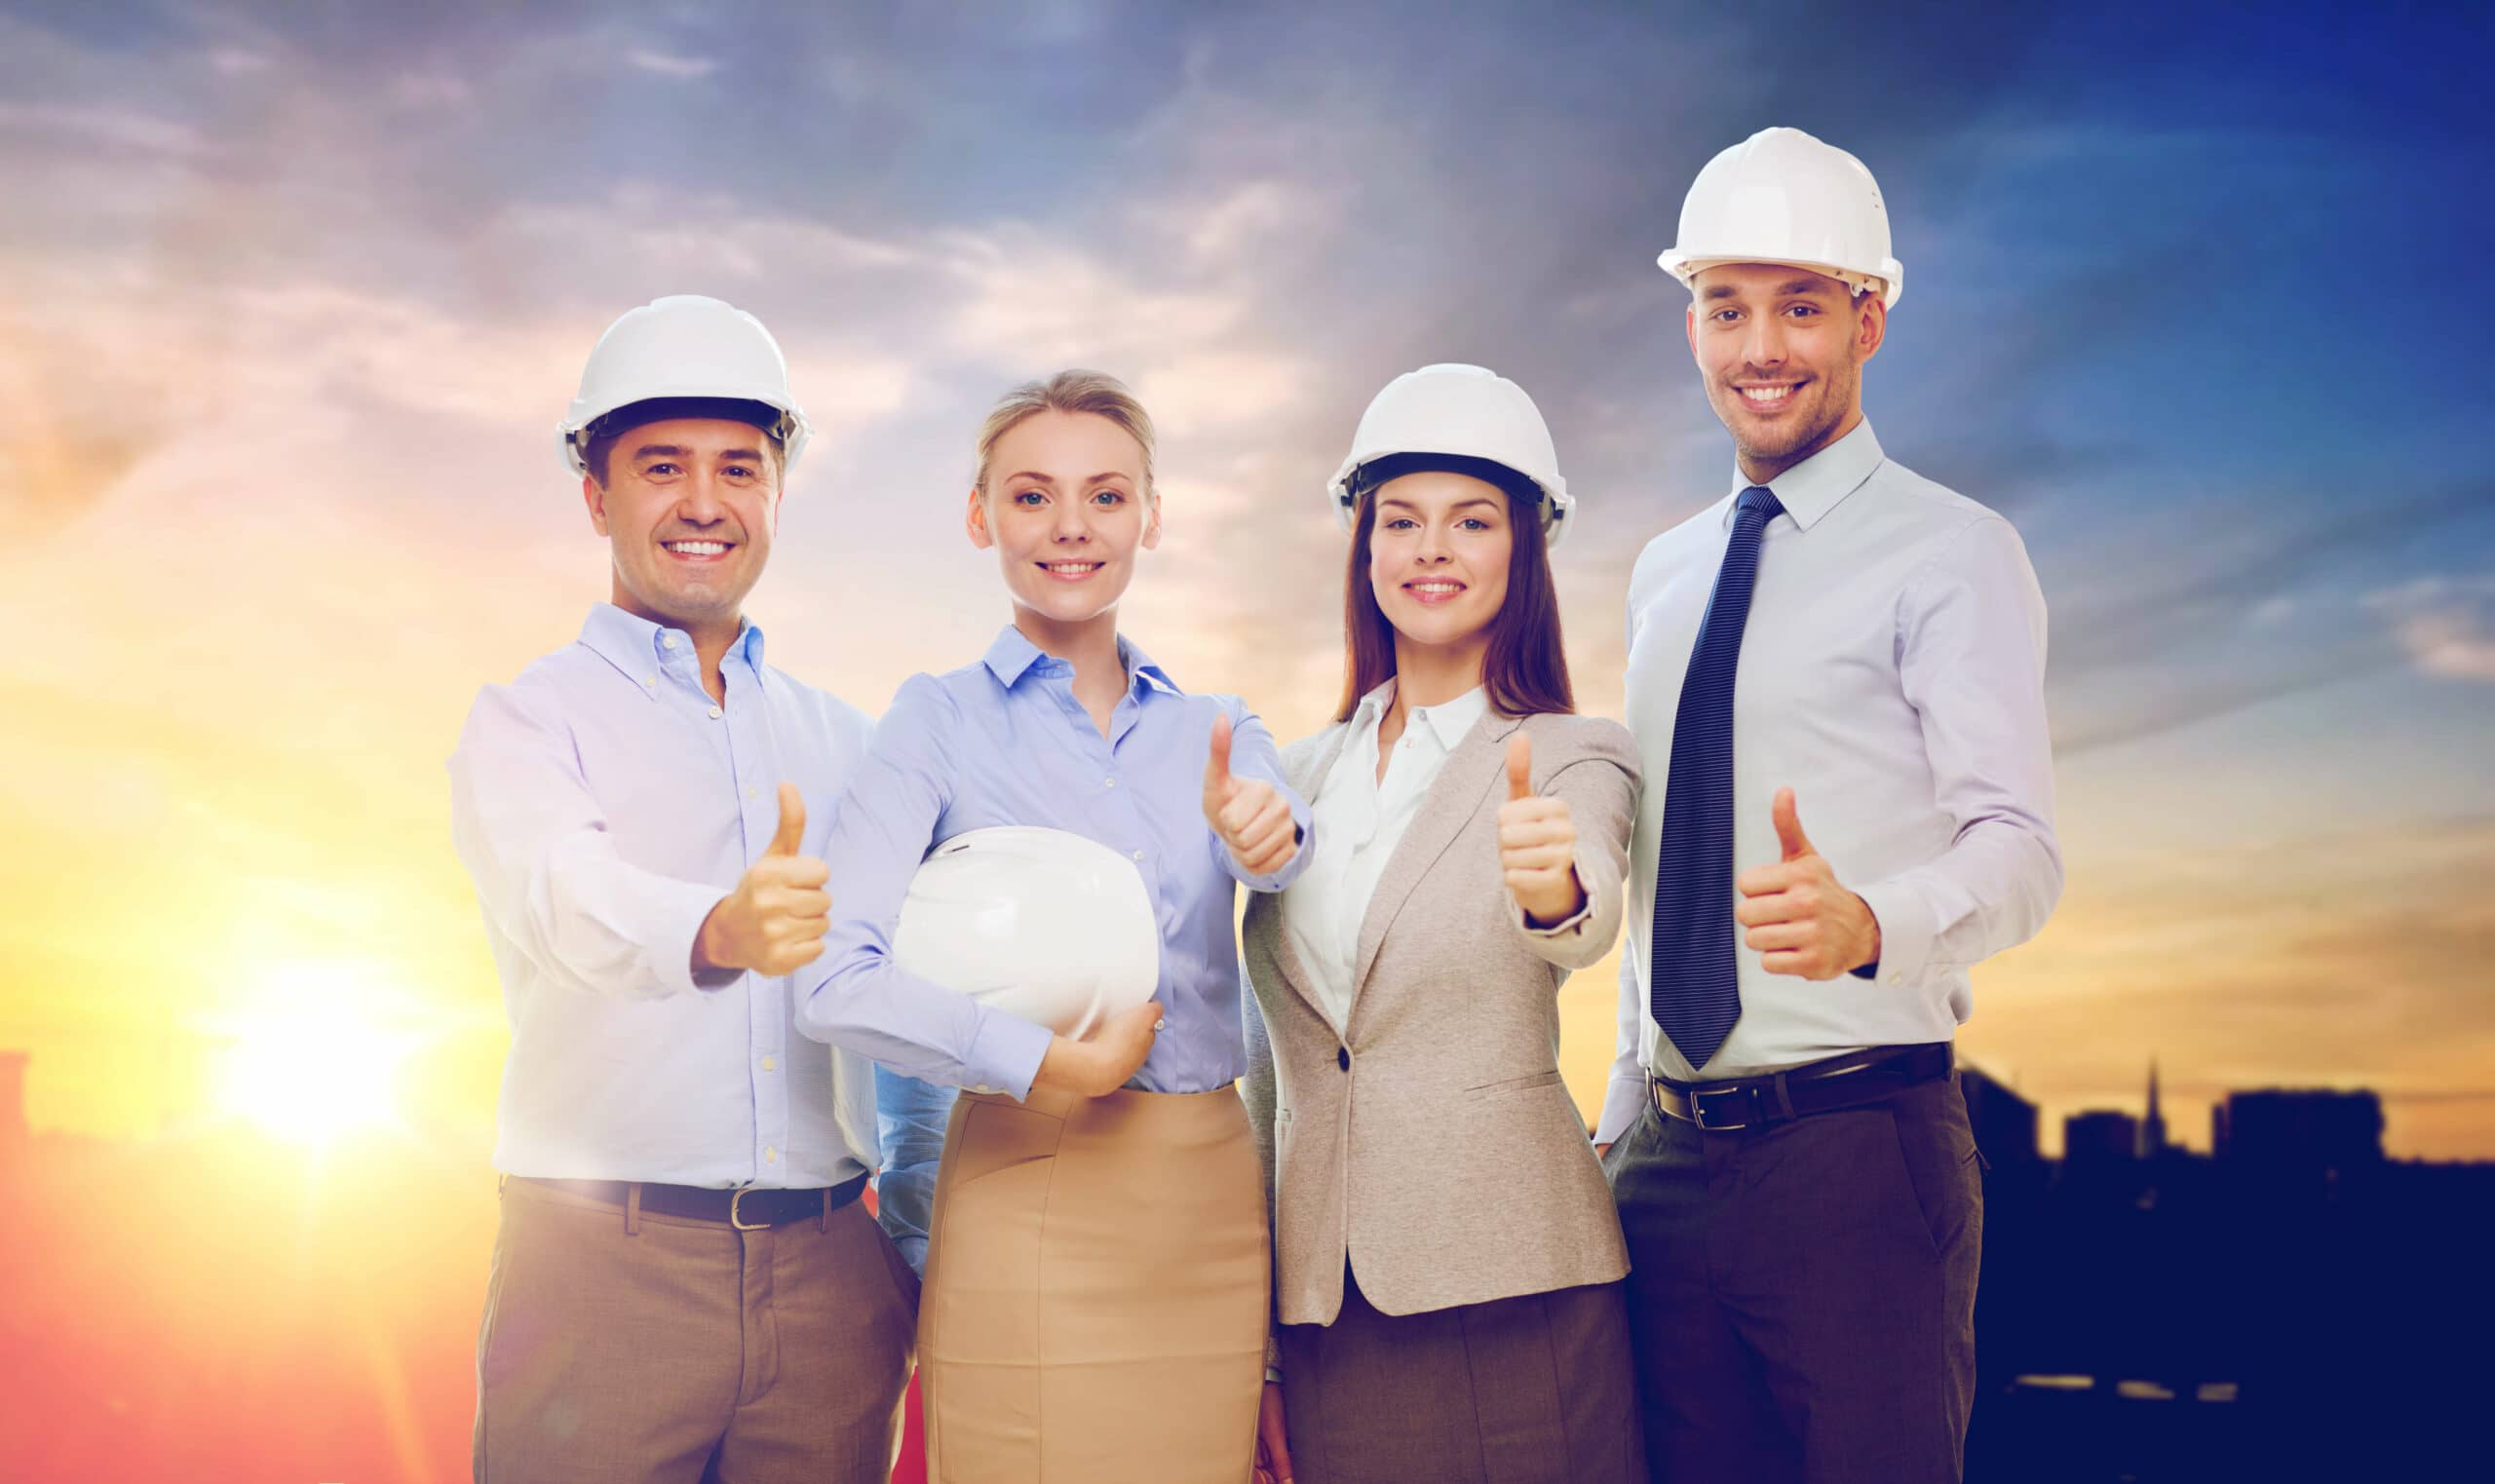 business, architecture and building concept - happy team of architects in white hard hats showing thumbs up over city background